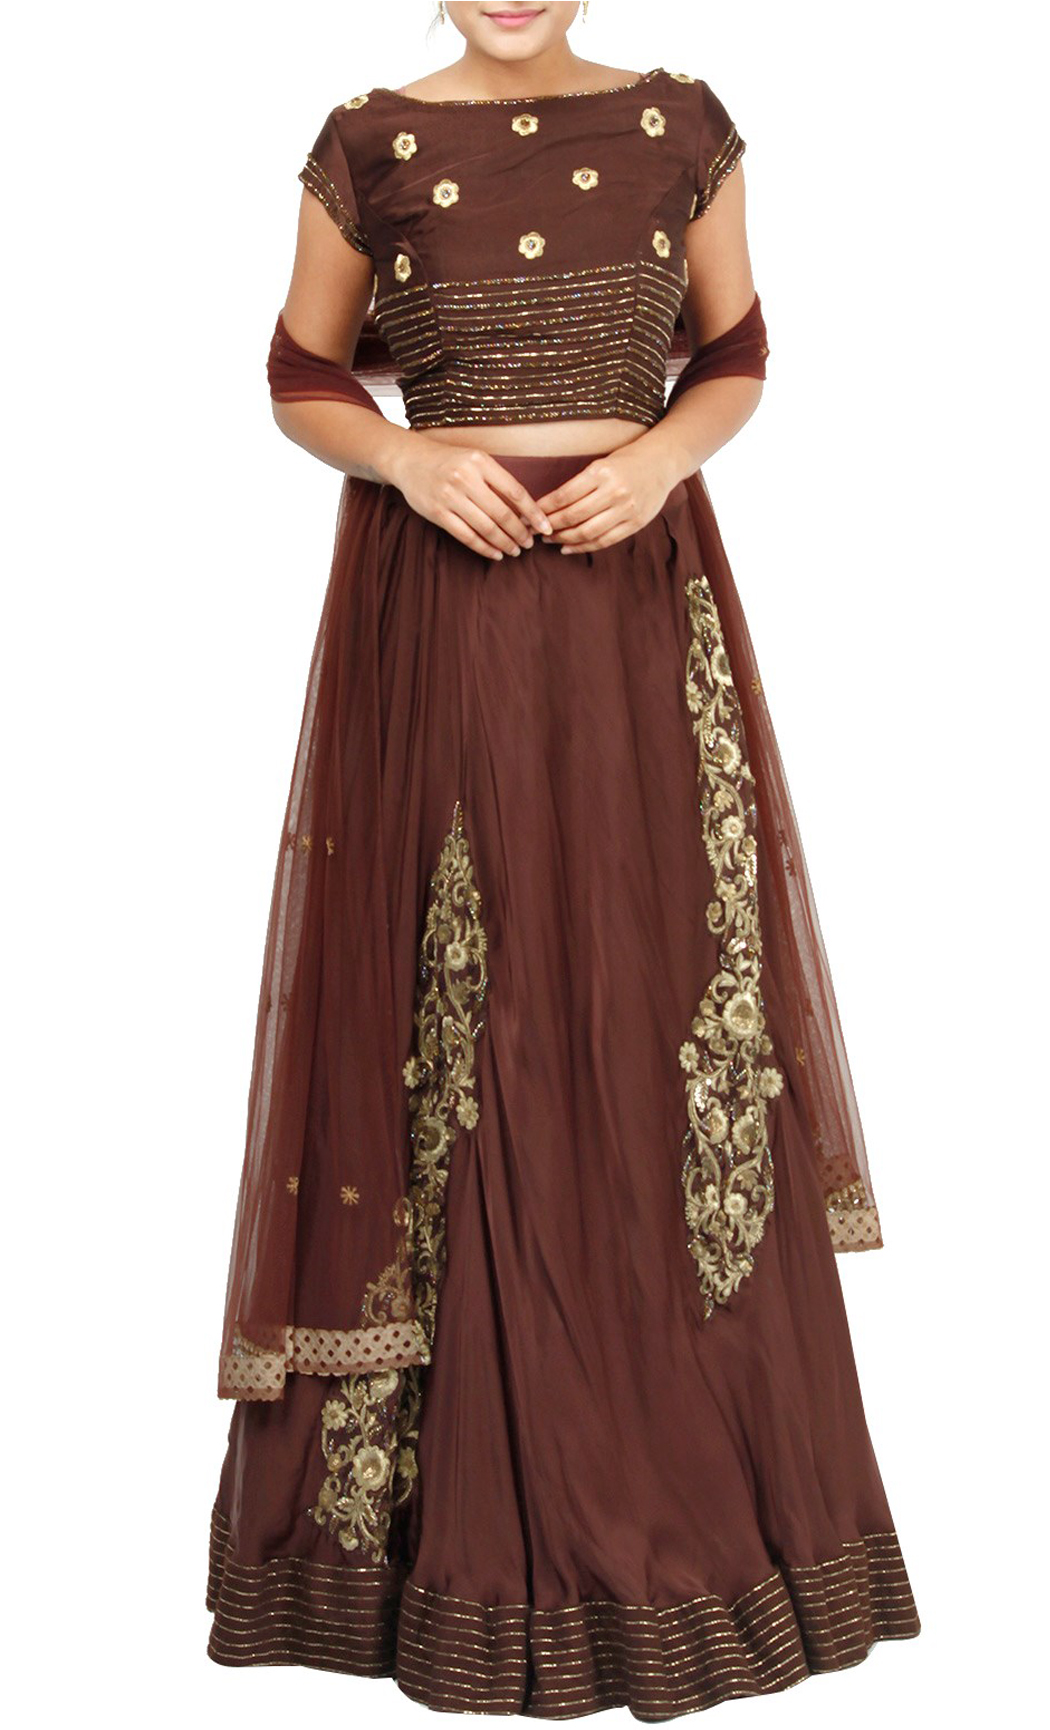 Brown Hand Embroidered Lehenga and Blouse Set - Buy Online